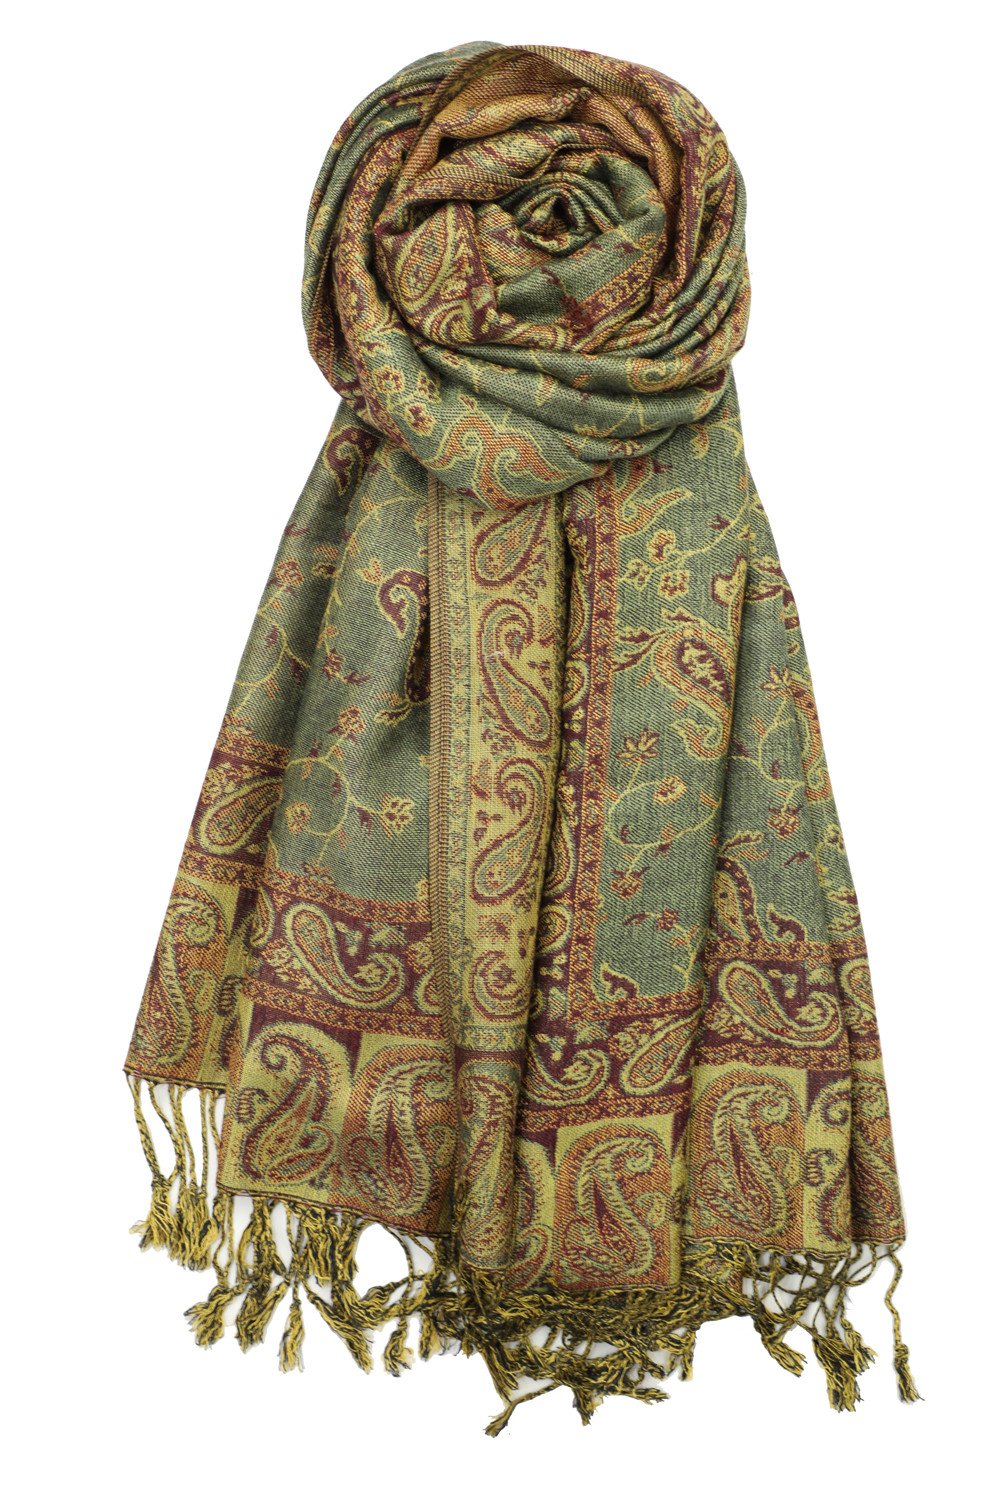 Achillea Soft Silky Reversible Paisley Pashmina Shawl Wrap Scarf w/Fringes 80'' x 28'' (Sage Green)